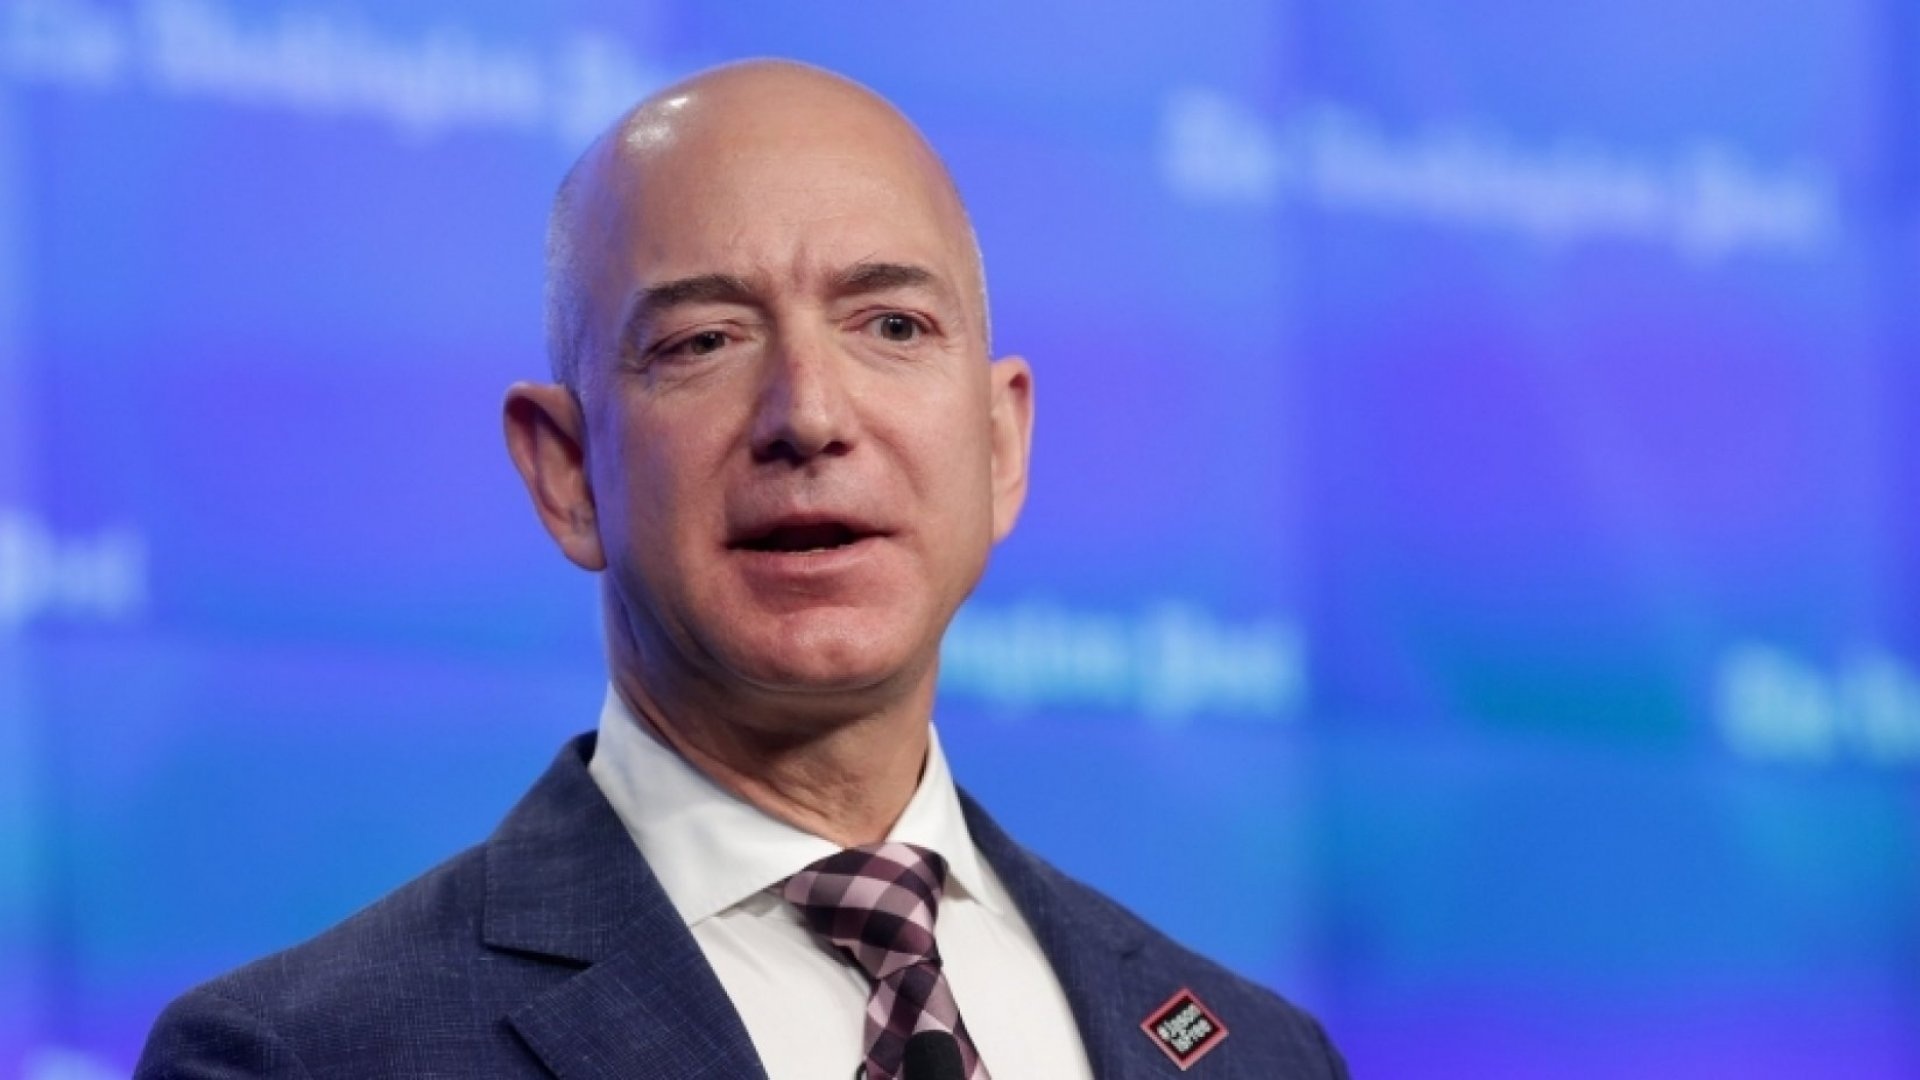 Jeff Bezos Is Making 1 Very Big Business Mistake